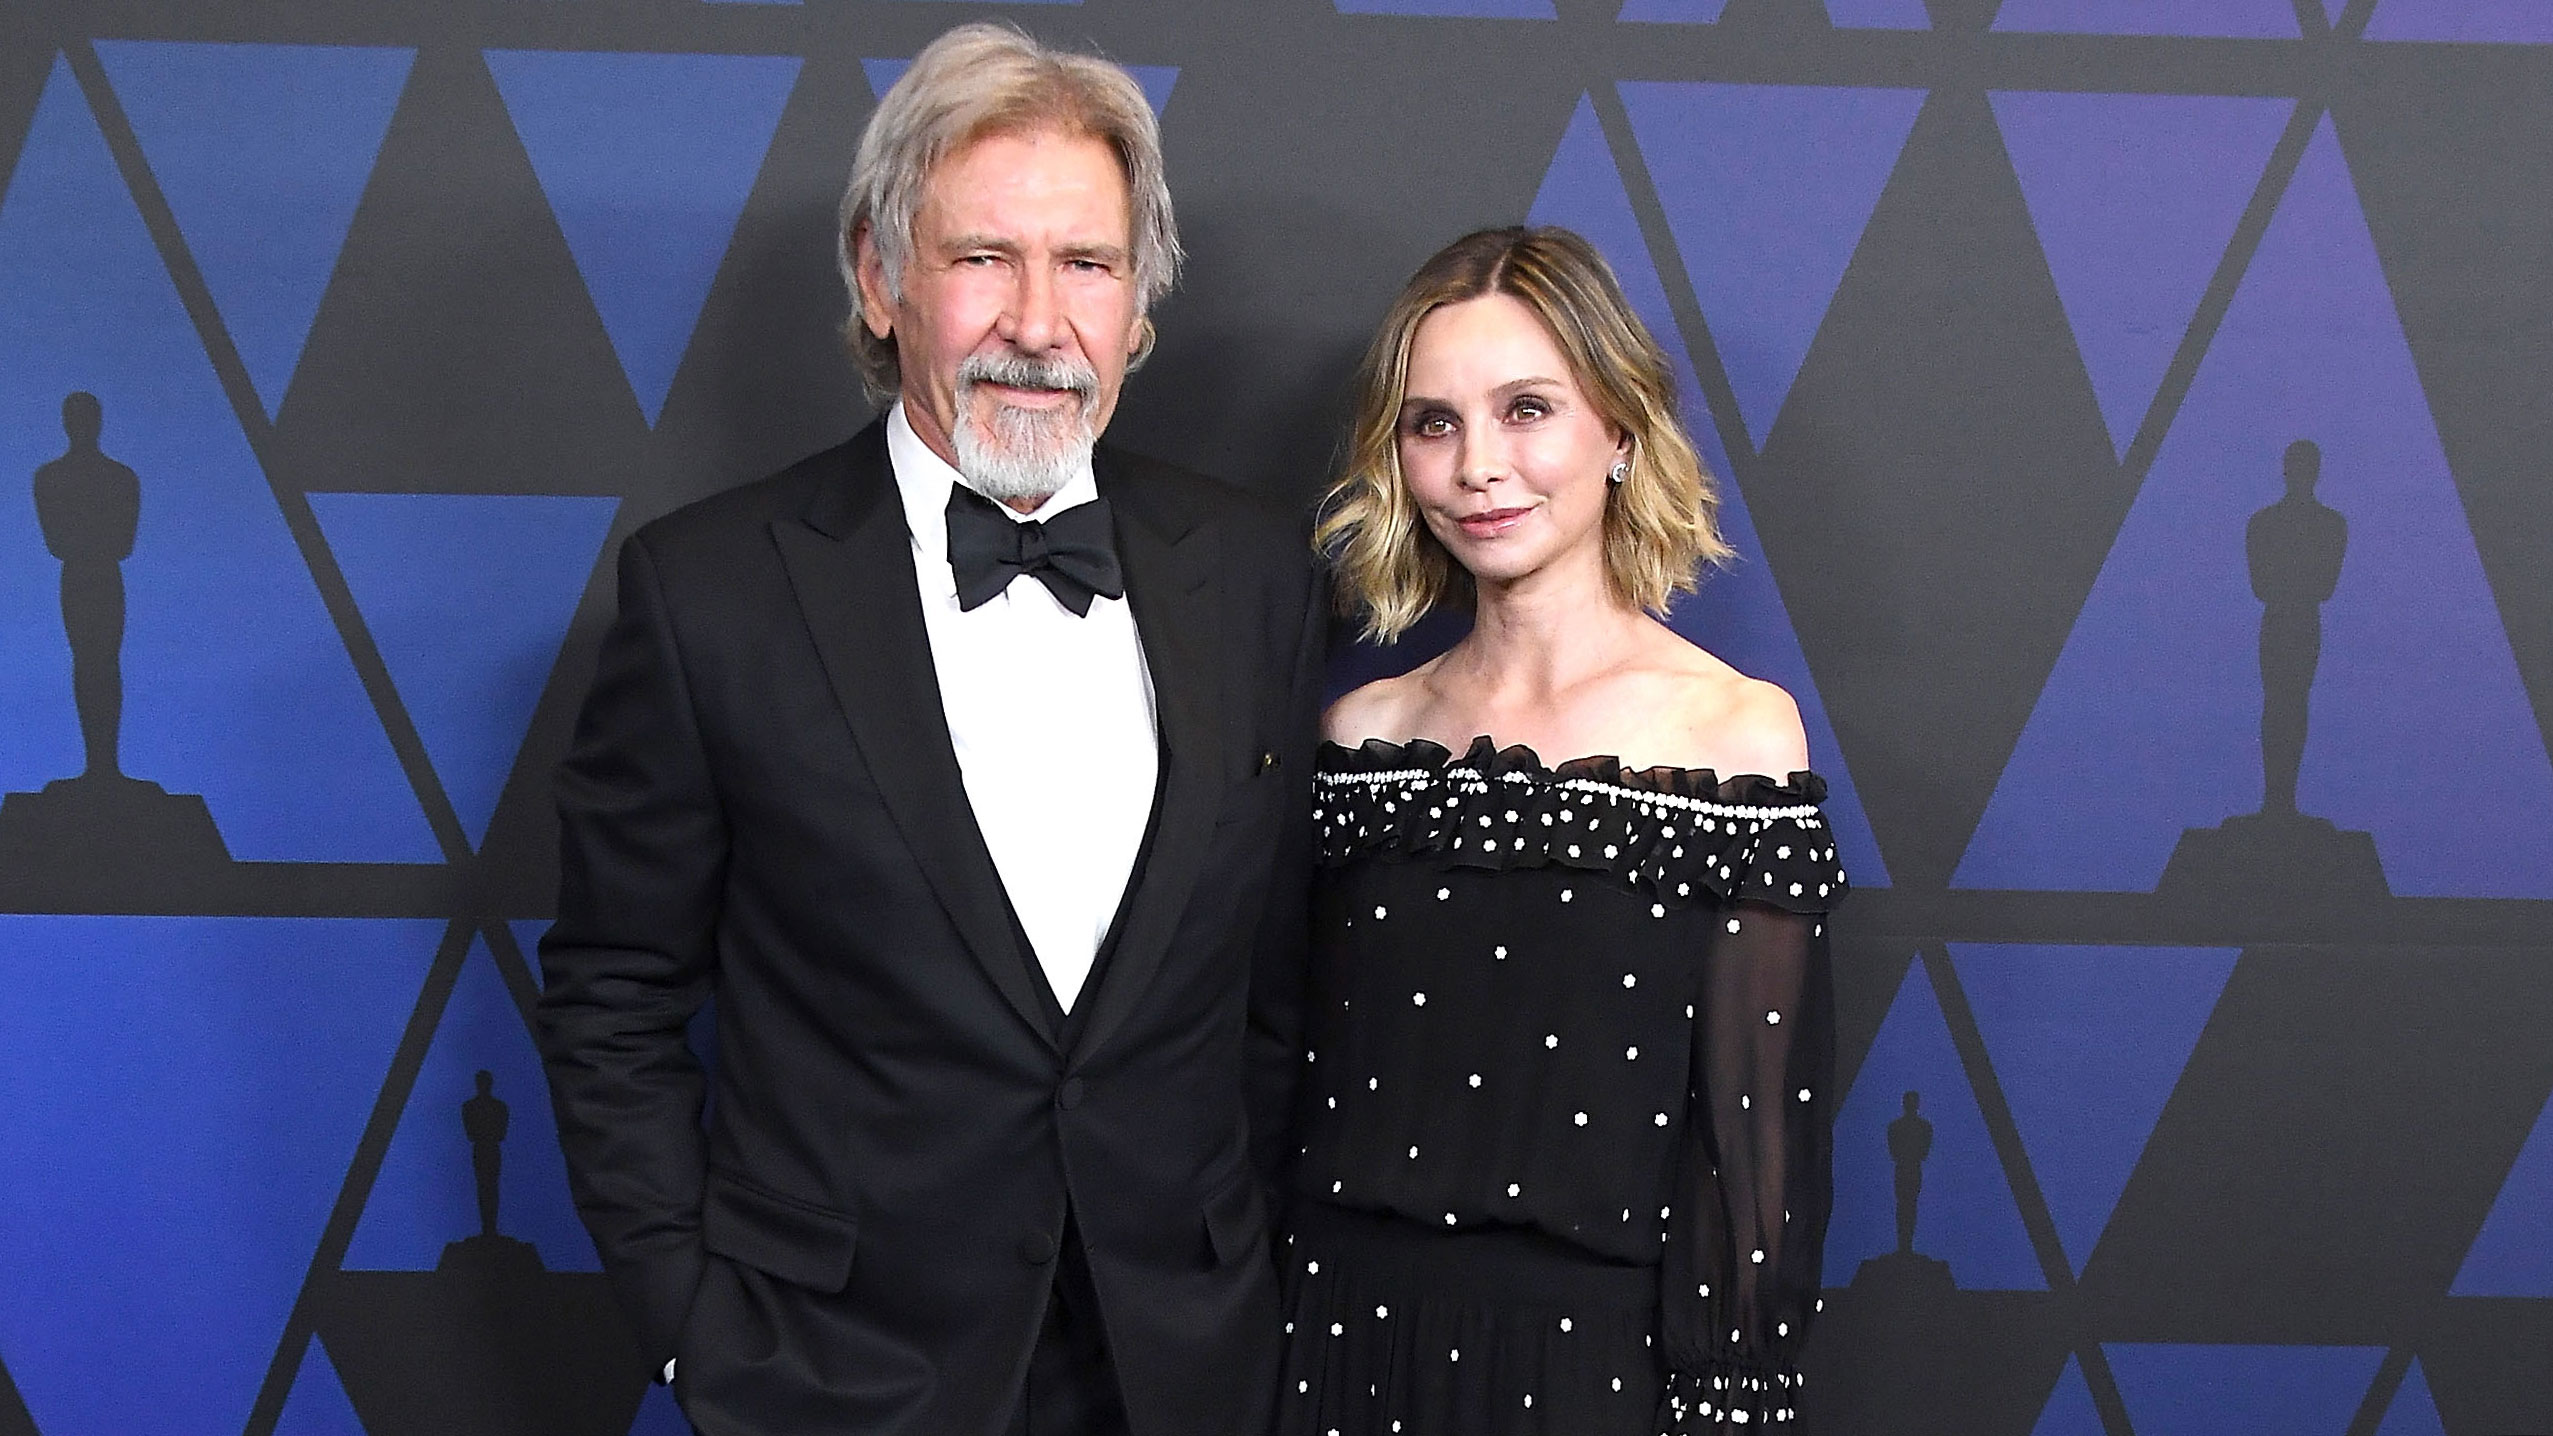 Harrison Ford's secret to a happy marriage: 'Don't talk. Nod your head'